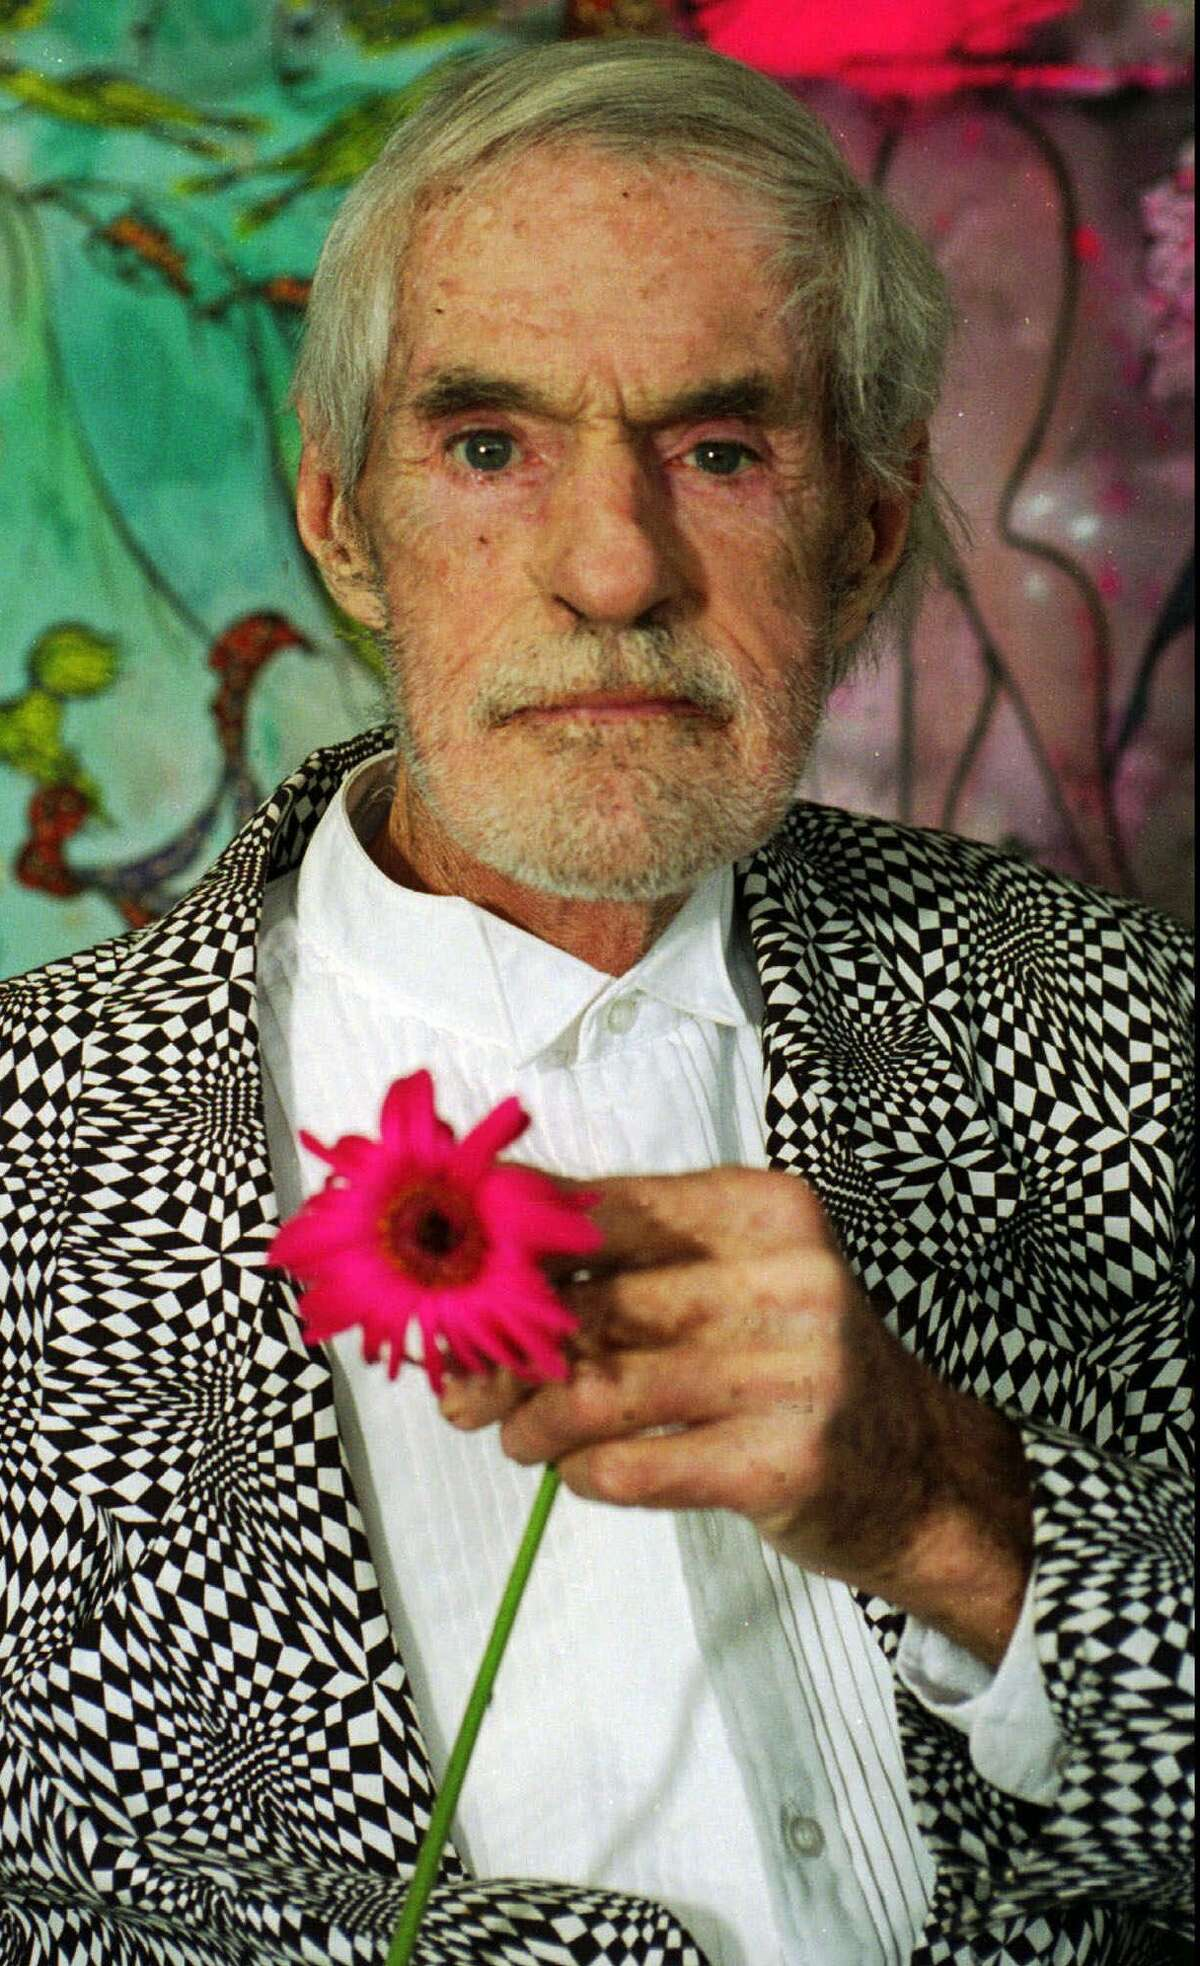 The late Timothy Leary is shown in his Beverly Hills, Calif., home in this Jan. 1996, file photo. The counterculture guru who was an anti-establishment hero in the 1960s, secretly cooperated with the FBI, newly released records indicate. Leary's information identified collaborators in his 1970 escape from a California prison. (AP Photo/Walt Weis, File)